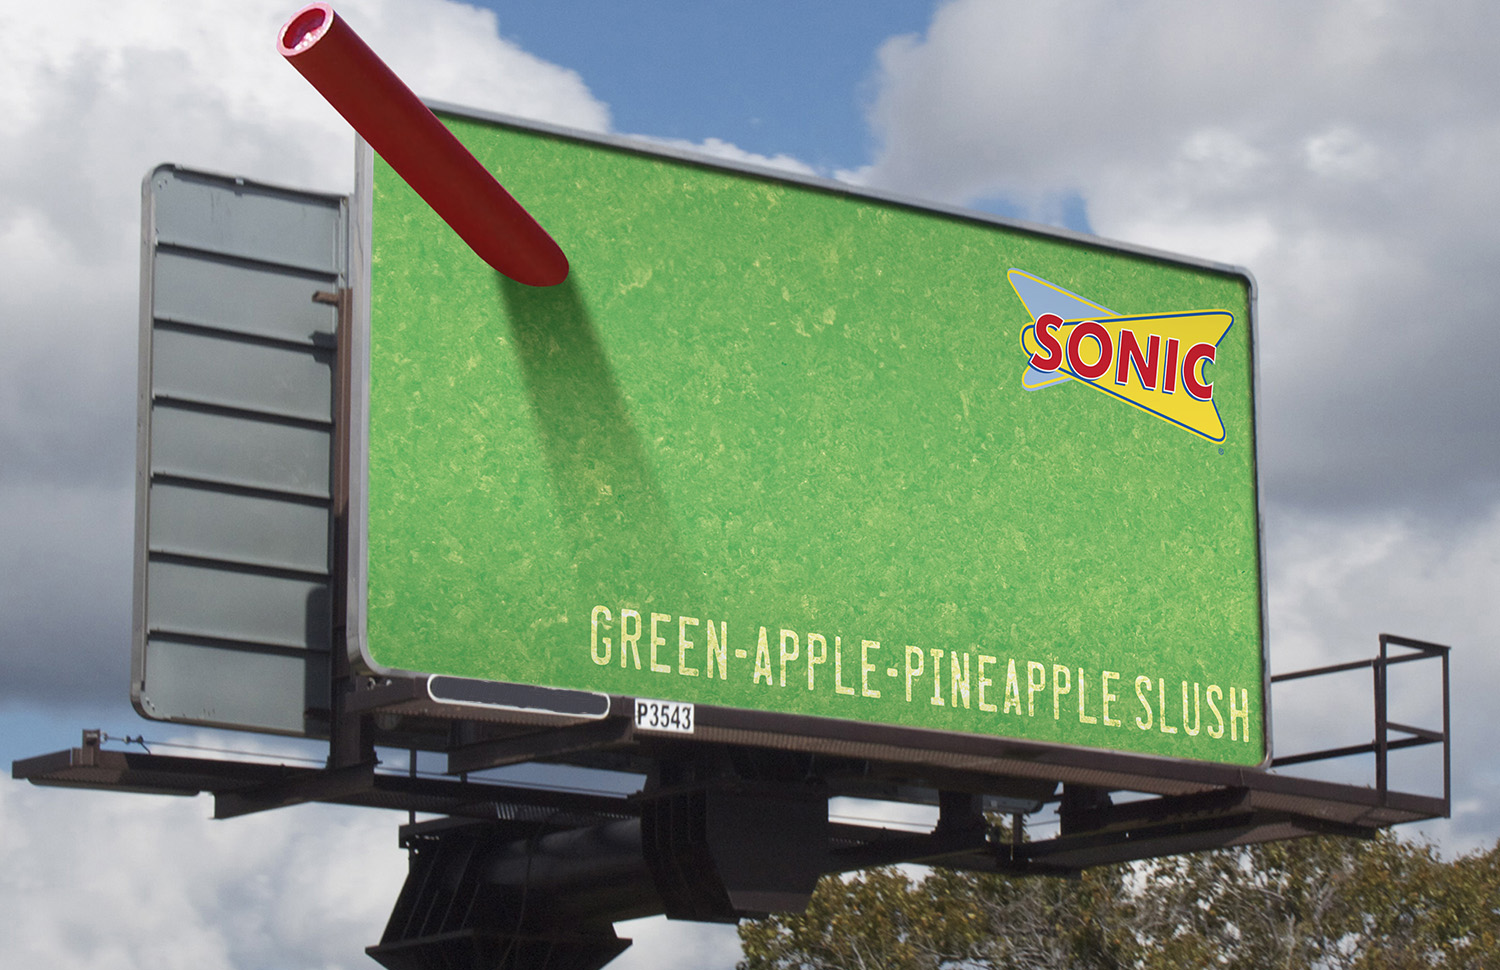 Sonic S 3 D Slushes Named The Year S Best Billboard Campaign At 2015 Obies Adweek